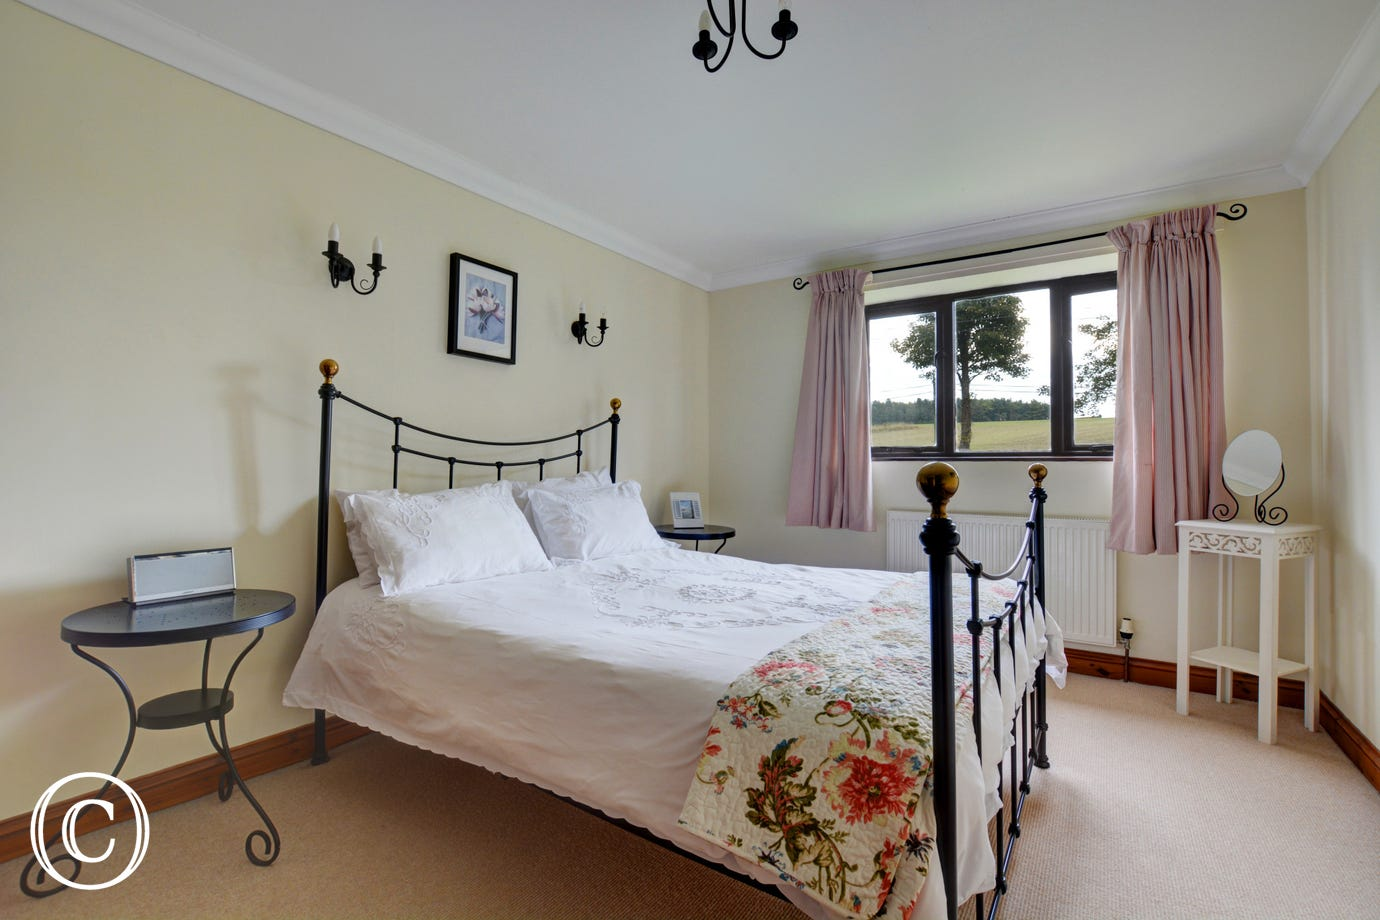 This comfortable king size bedroom which is a light and spacious room has the benefit of an ensuite bathroom